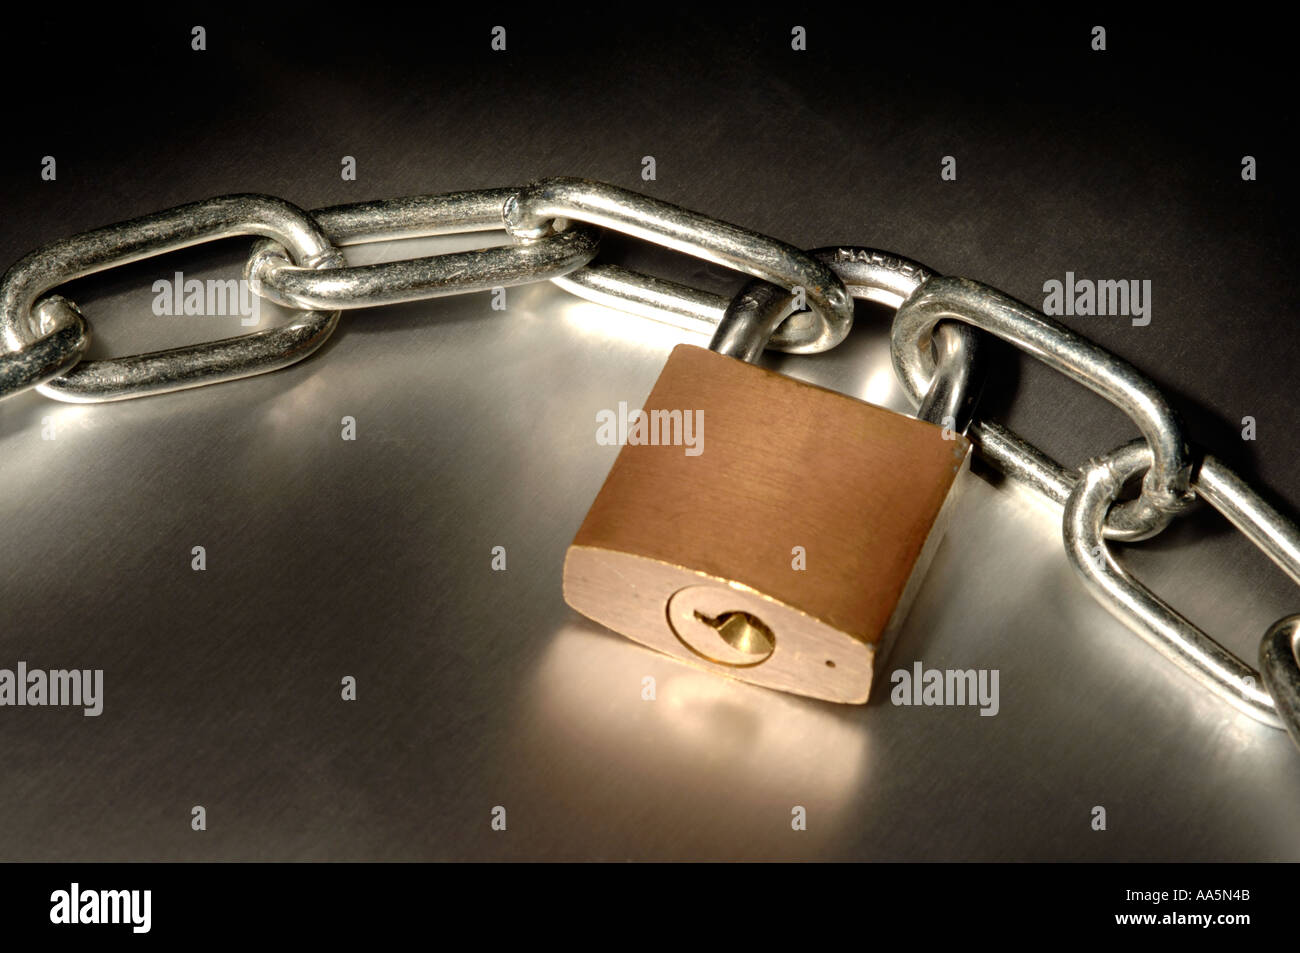 Chain and closed padlock - Stock Image